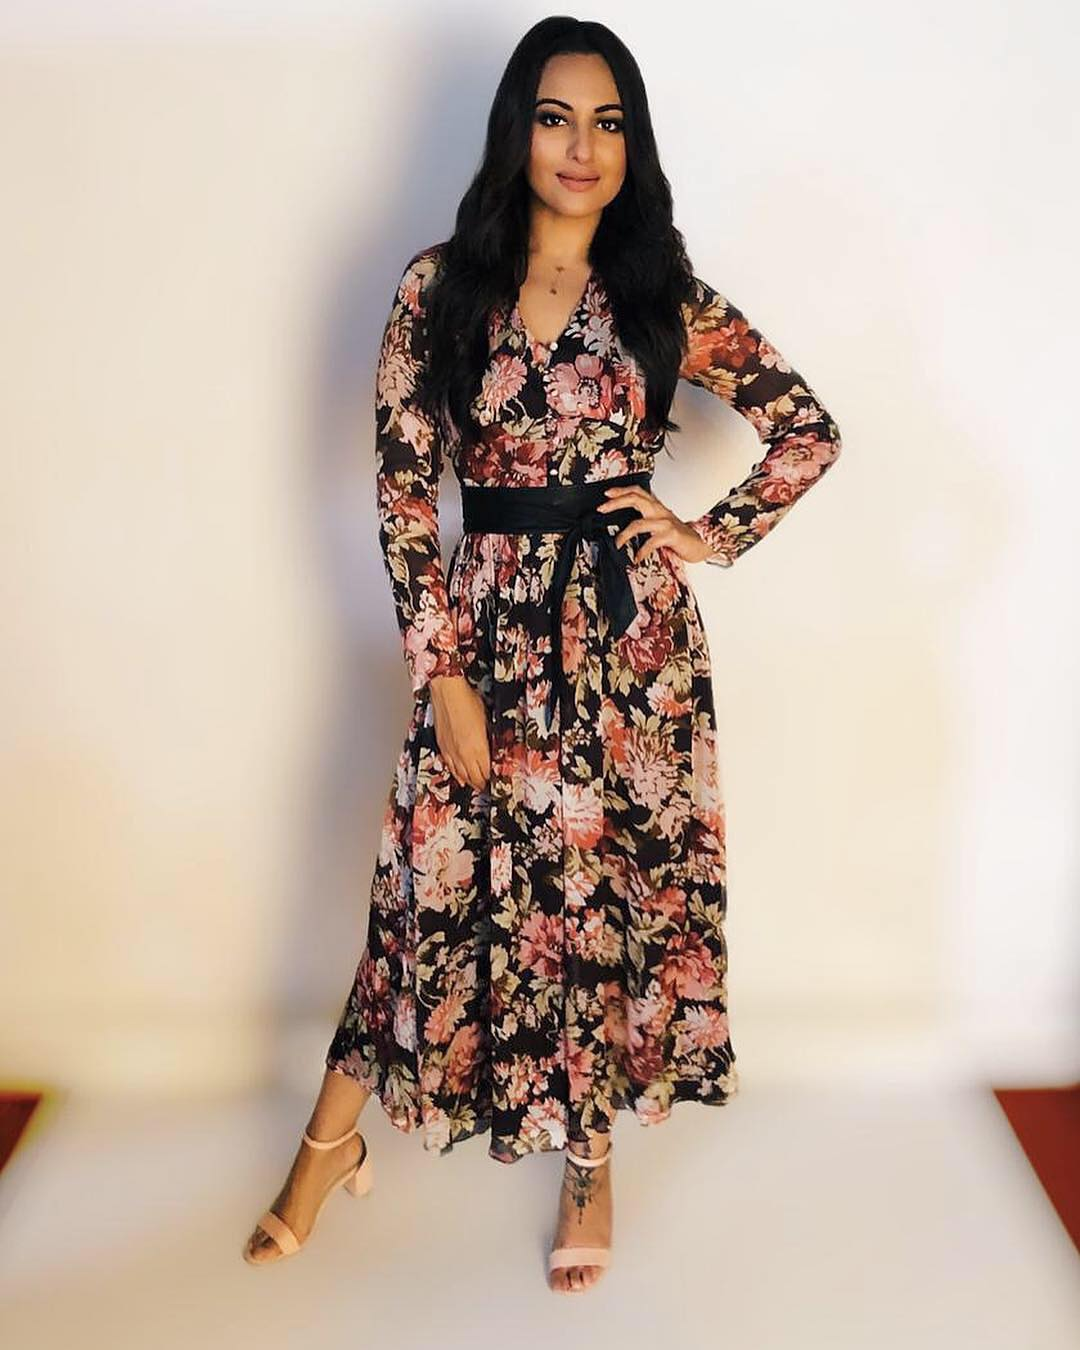 sonakshi-sinha-karisma-kapoor-dark-floral-print-dress-winter-